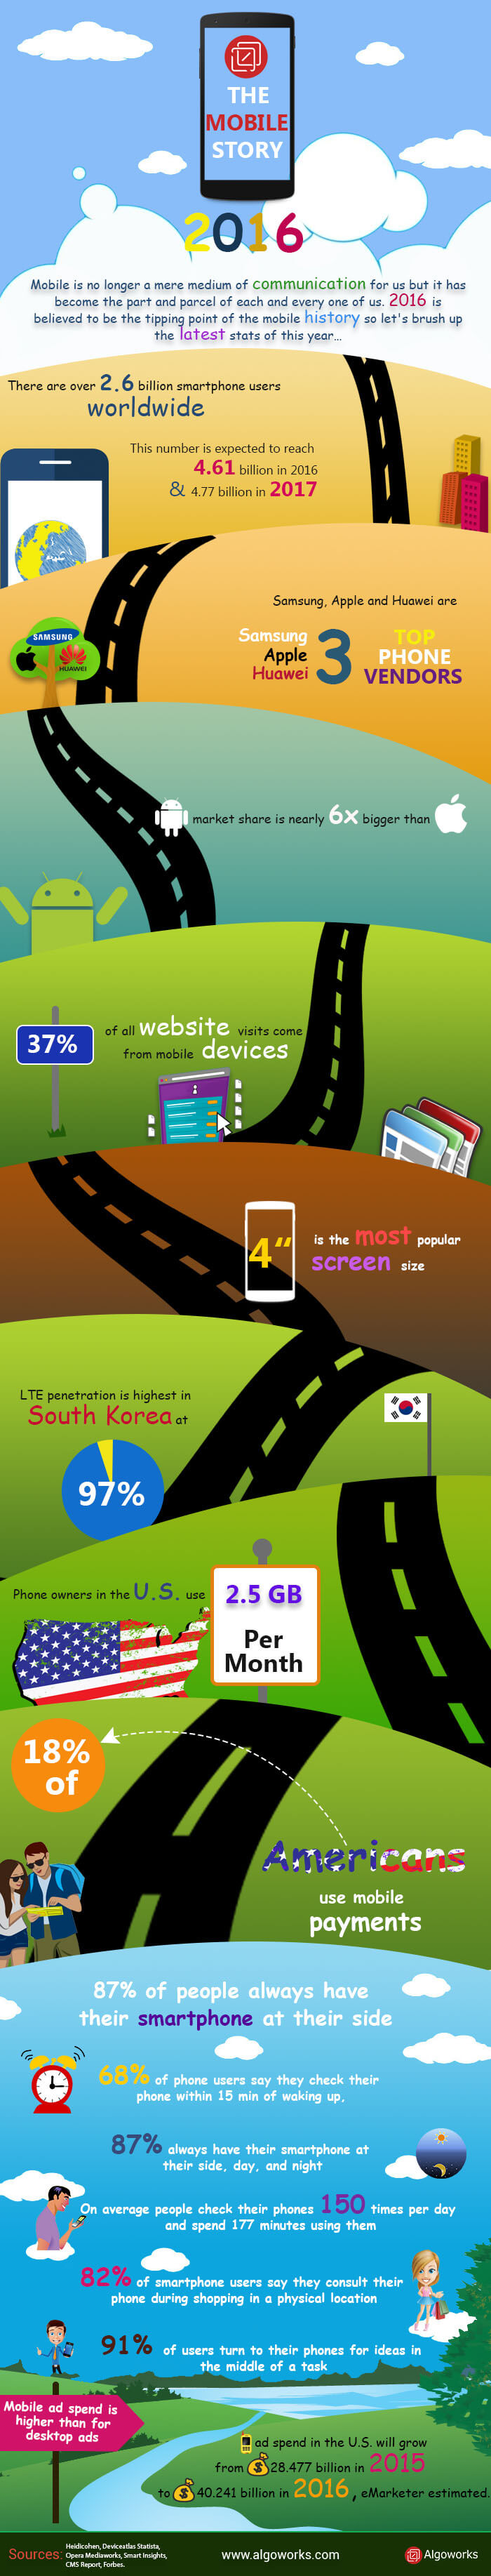 The Mobile Story | An Infographic